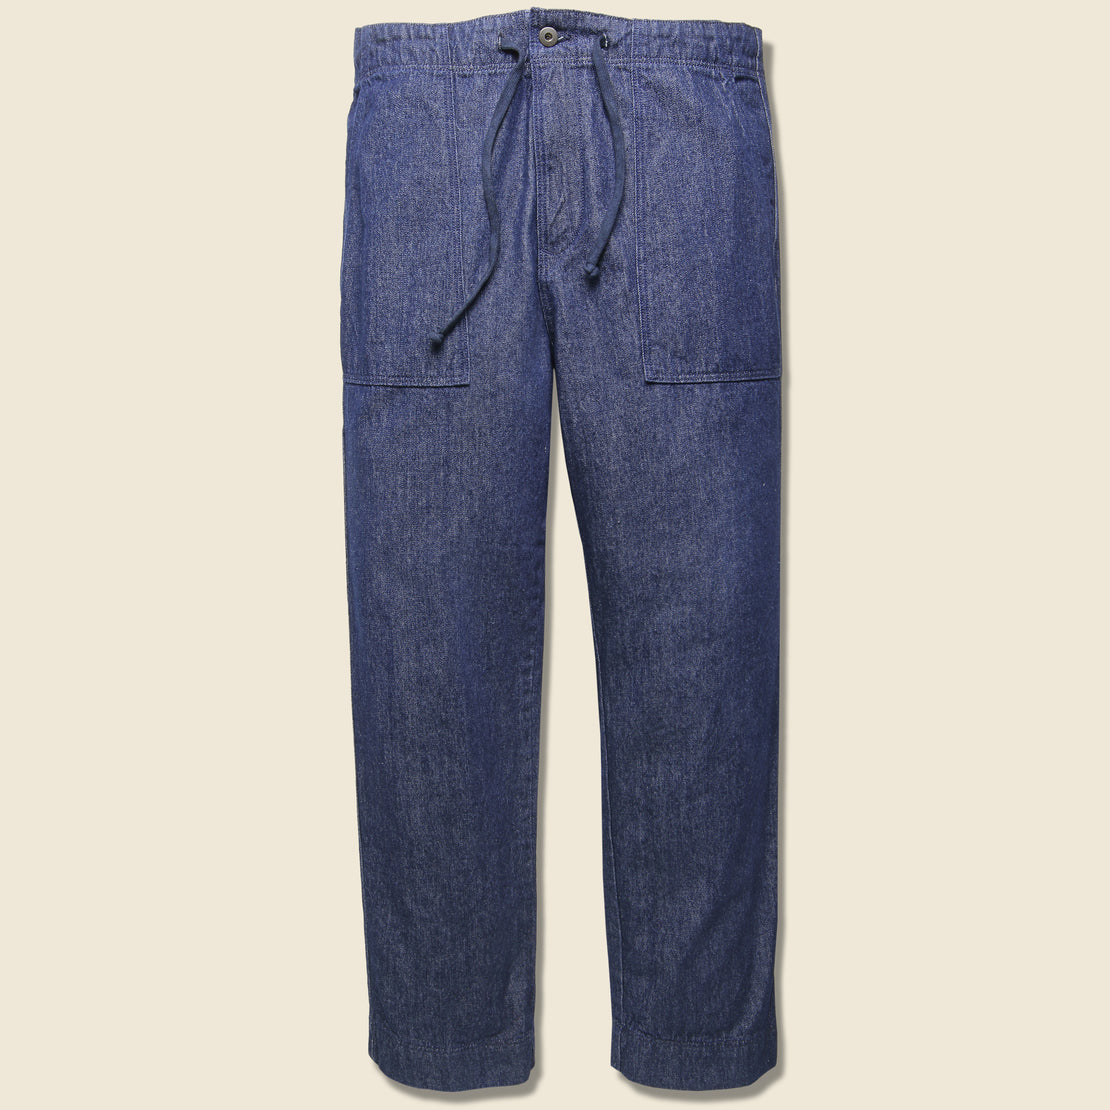 Save Khaki Denim Garden Pant - Rinse